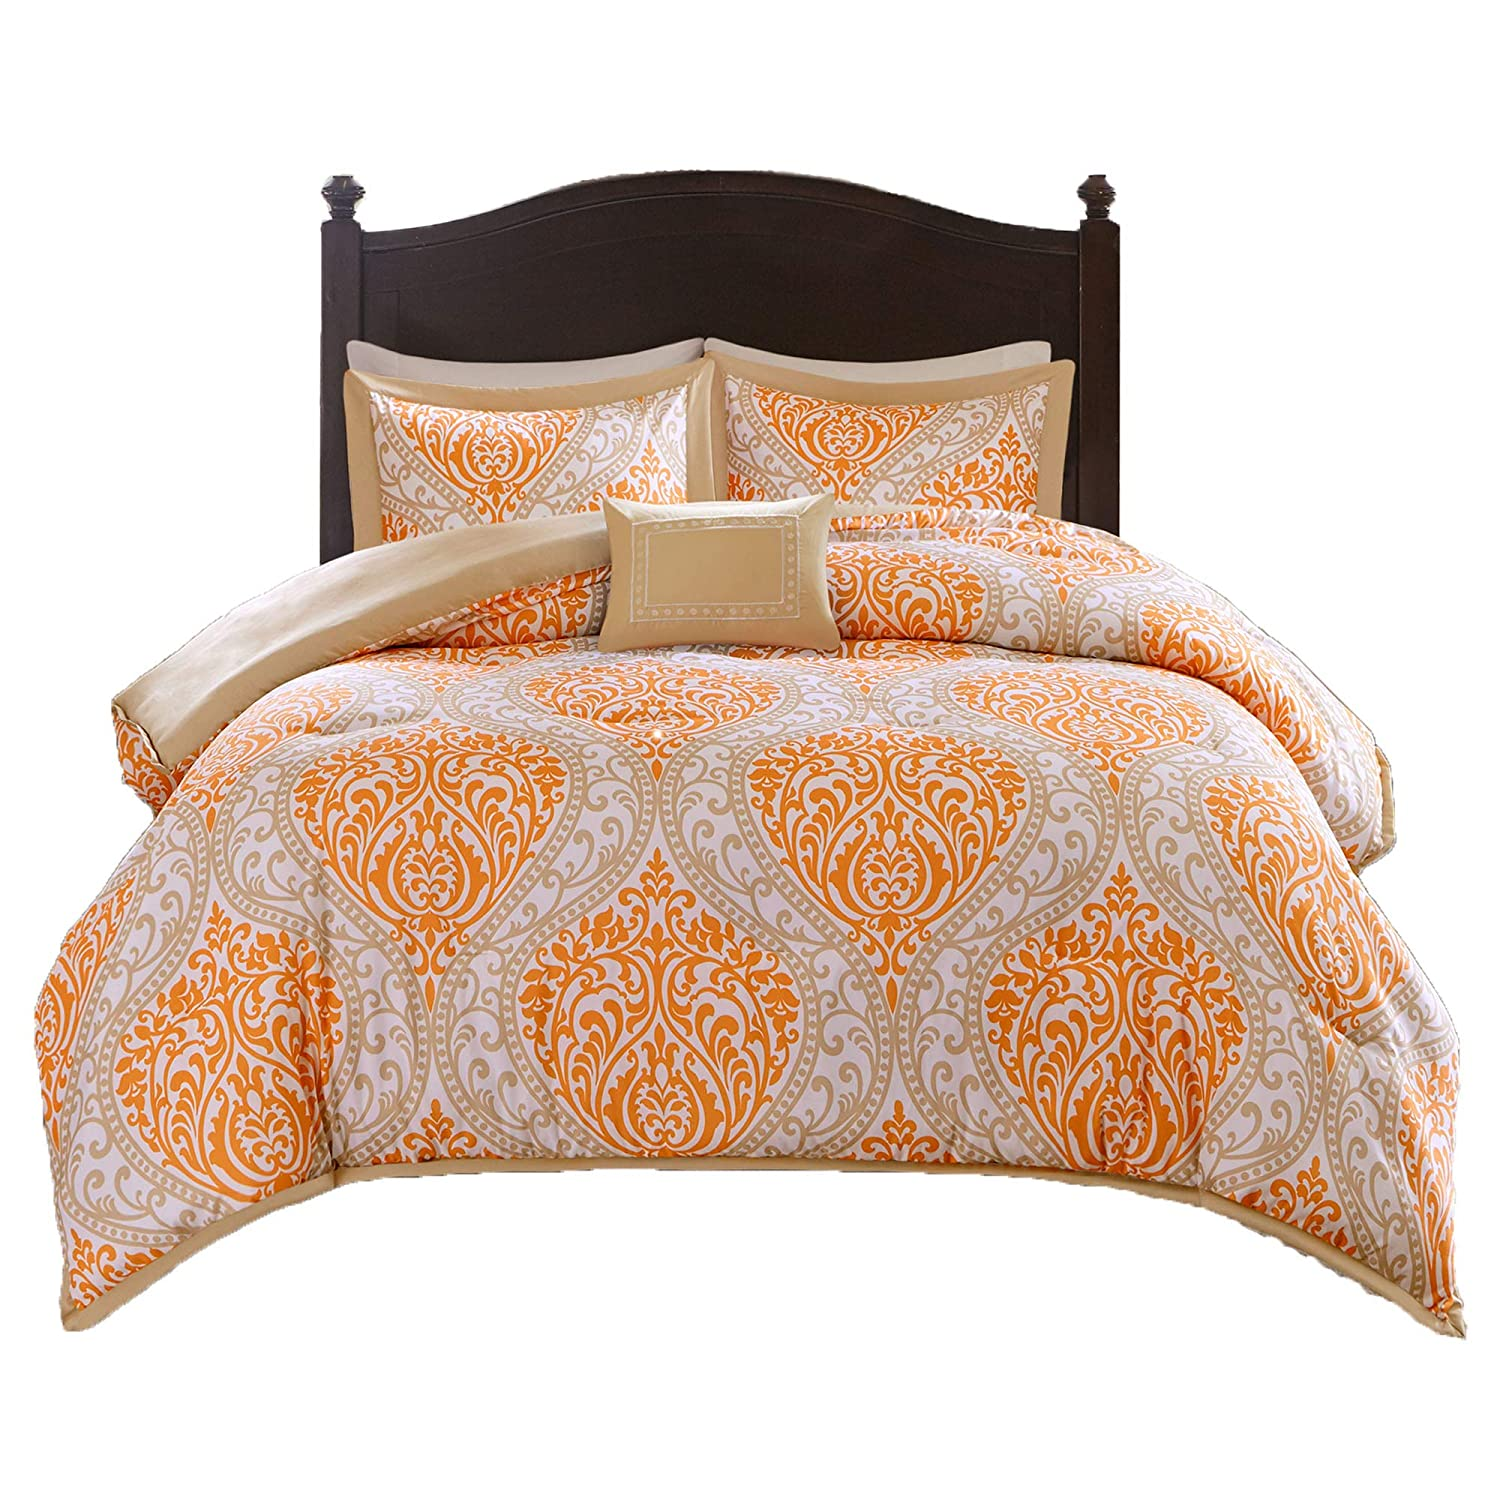 Comfort Spaces - Coco Comforter Set - 4 Piece - Orange and Taupe